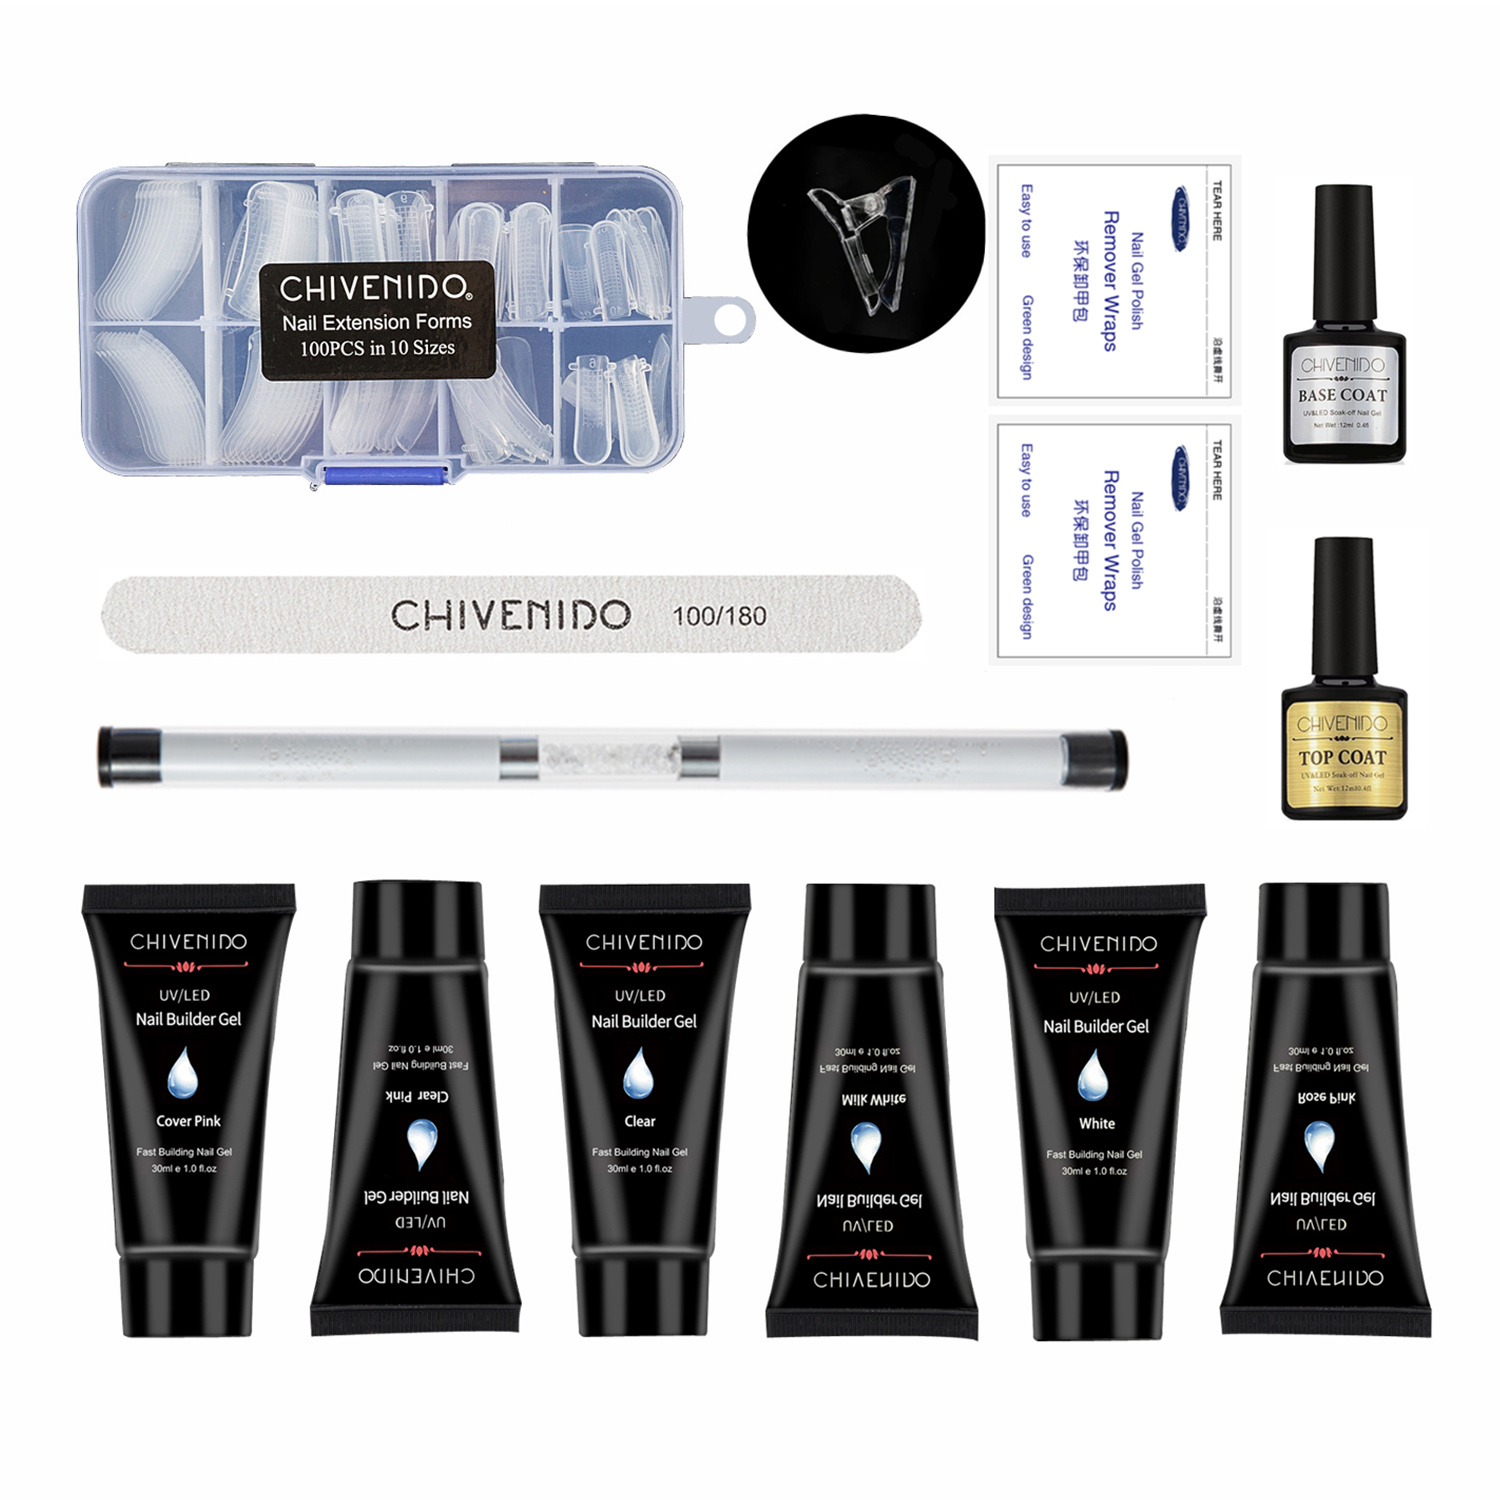 CHIVENIDO Poly Gel Nail Kit - 30ml 6 Colors Extension Gel, 100Pcs Acrylic in 10 Sizes, Art Gift Set with Box